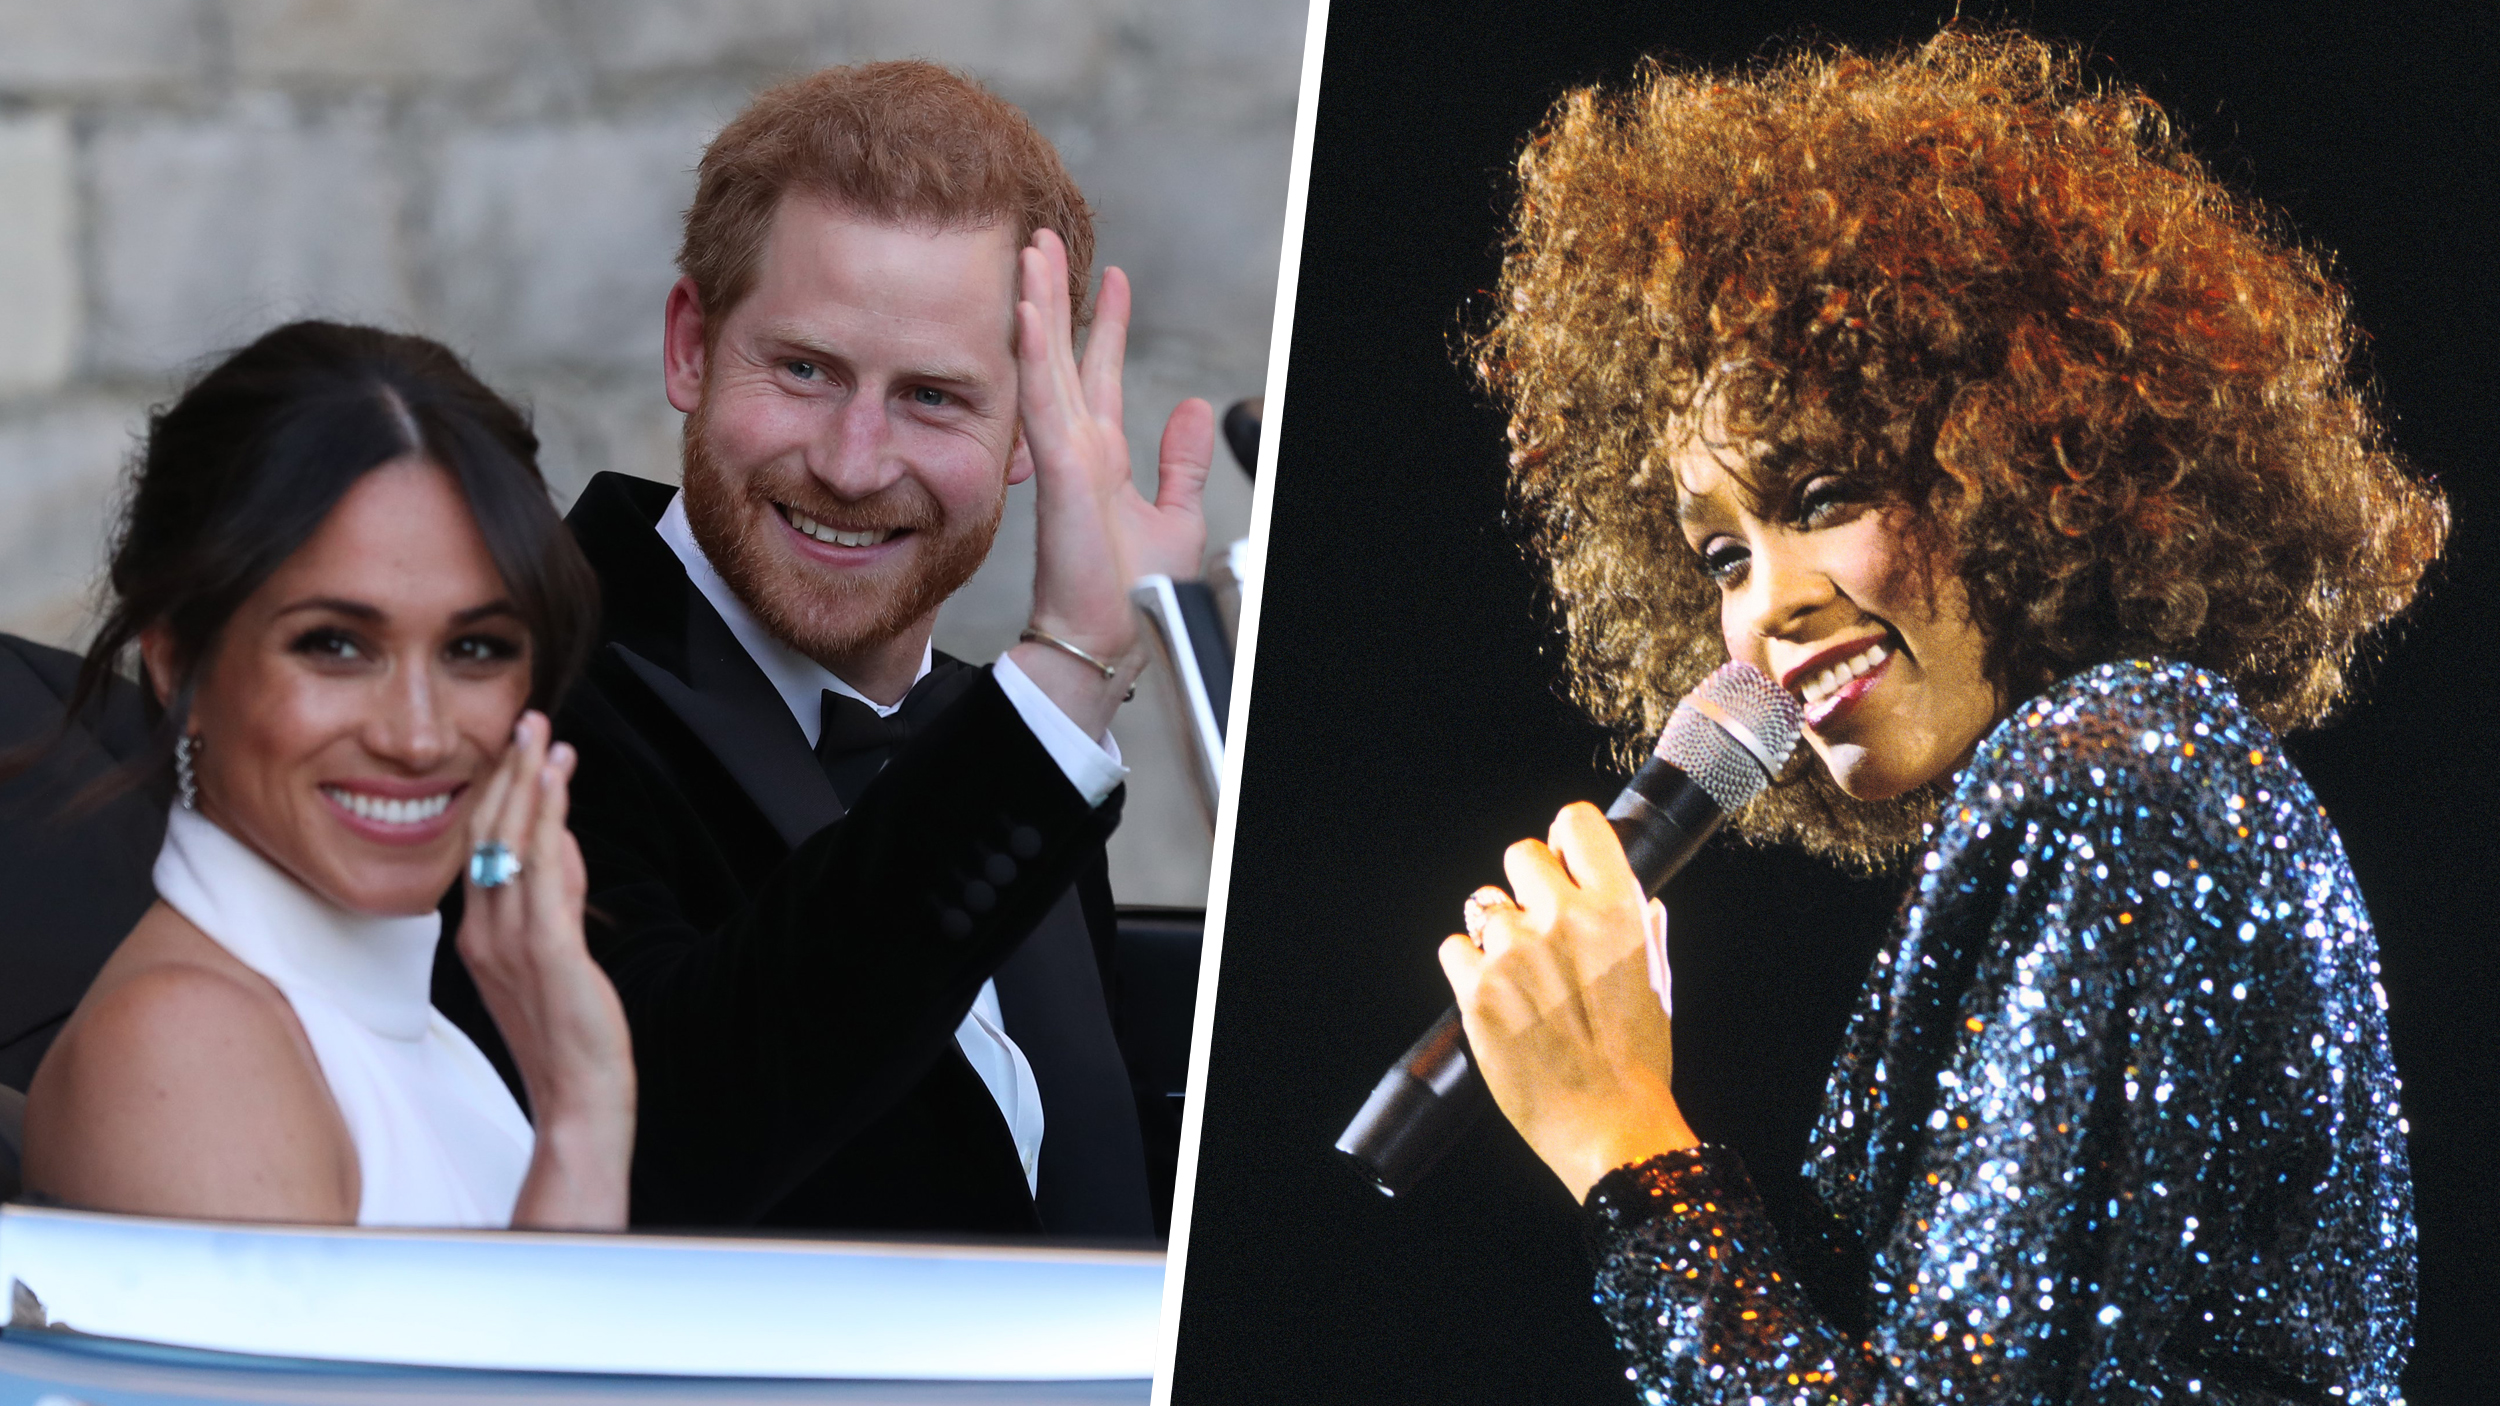 Prince Harry and Duchess Meghan's first dance song is a Whitney Houston classic